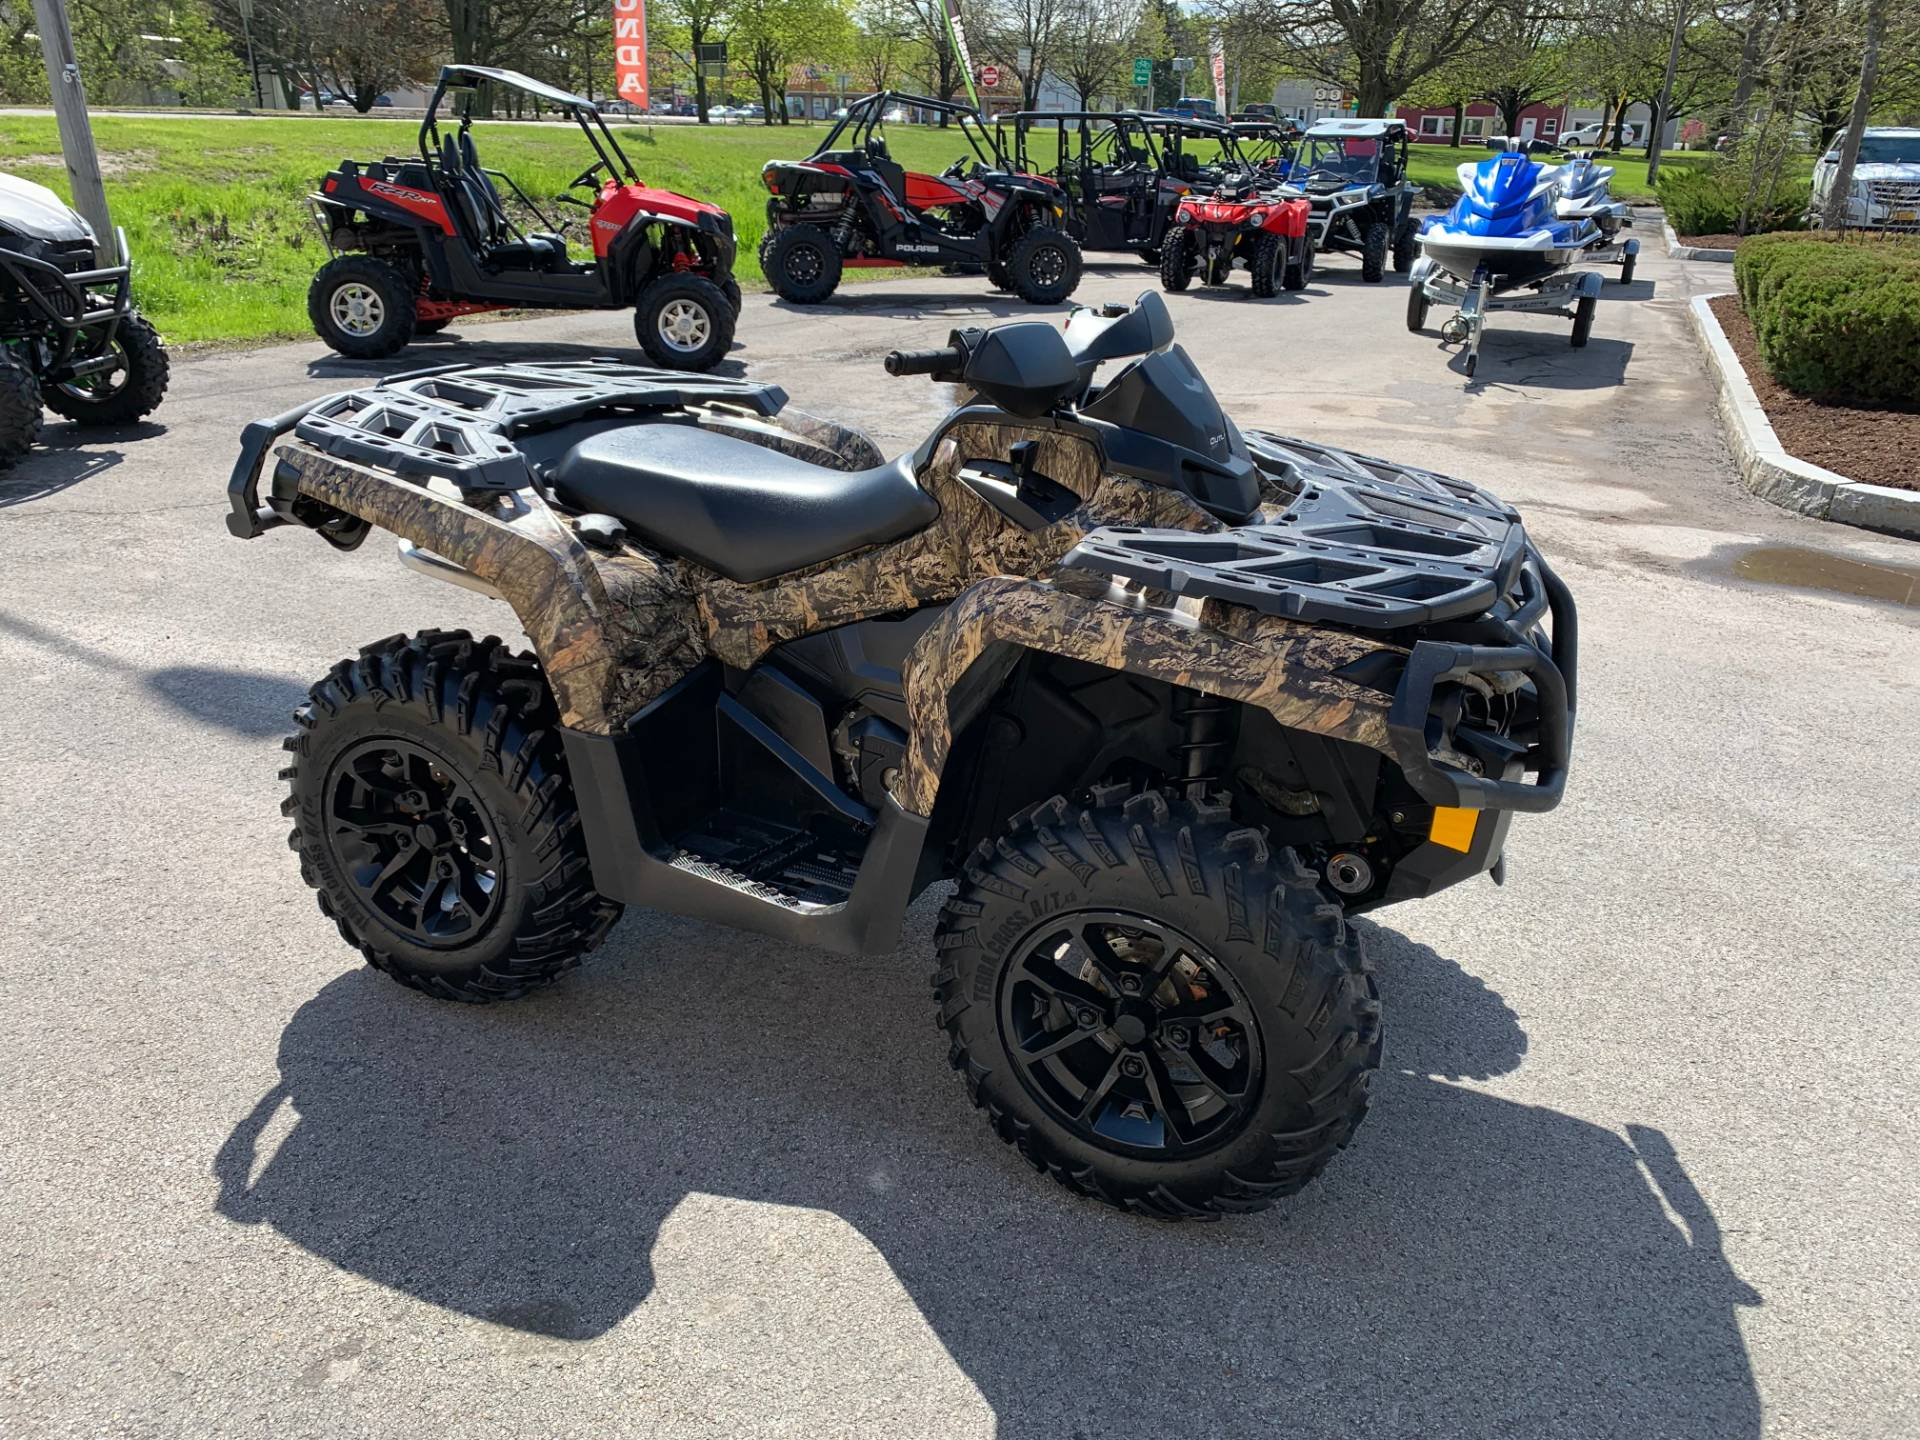 2018 Can-Am Outlander XT 850 in Herkimer, New York - Photo 11